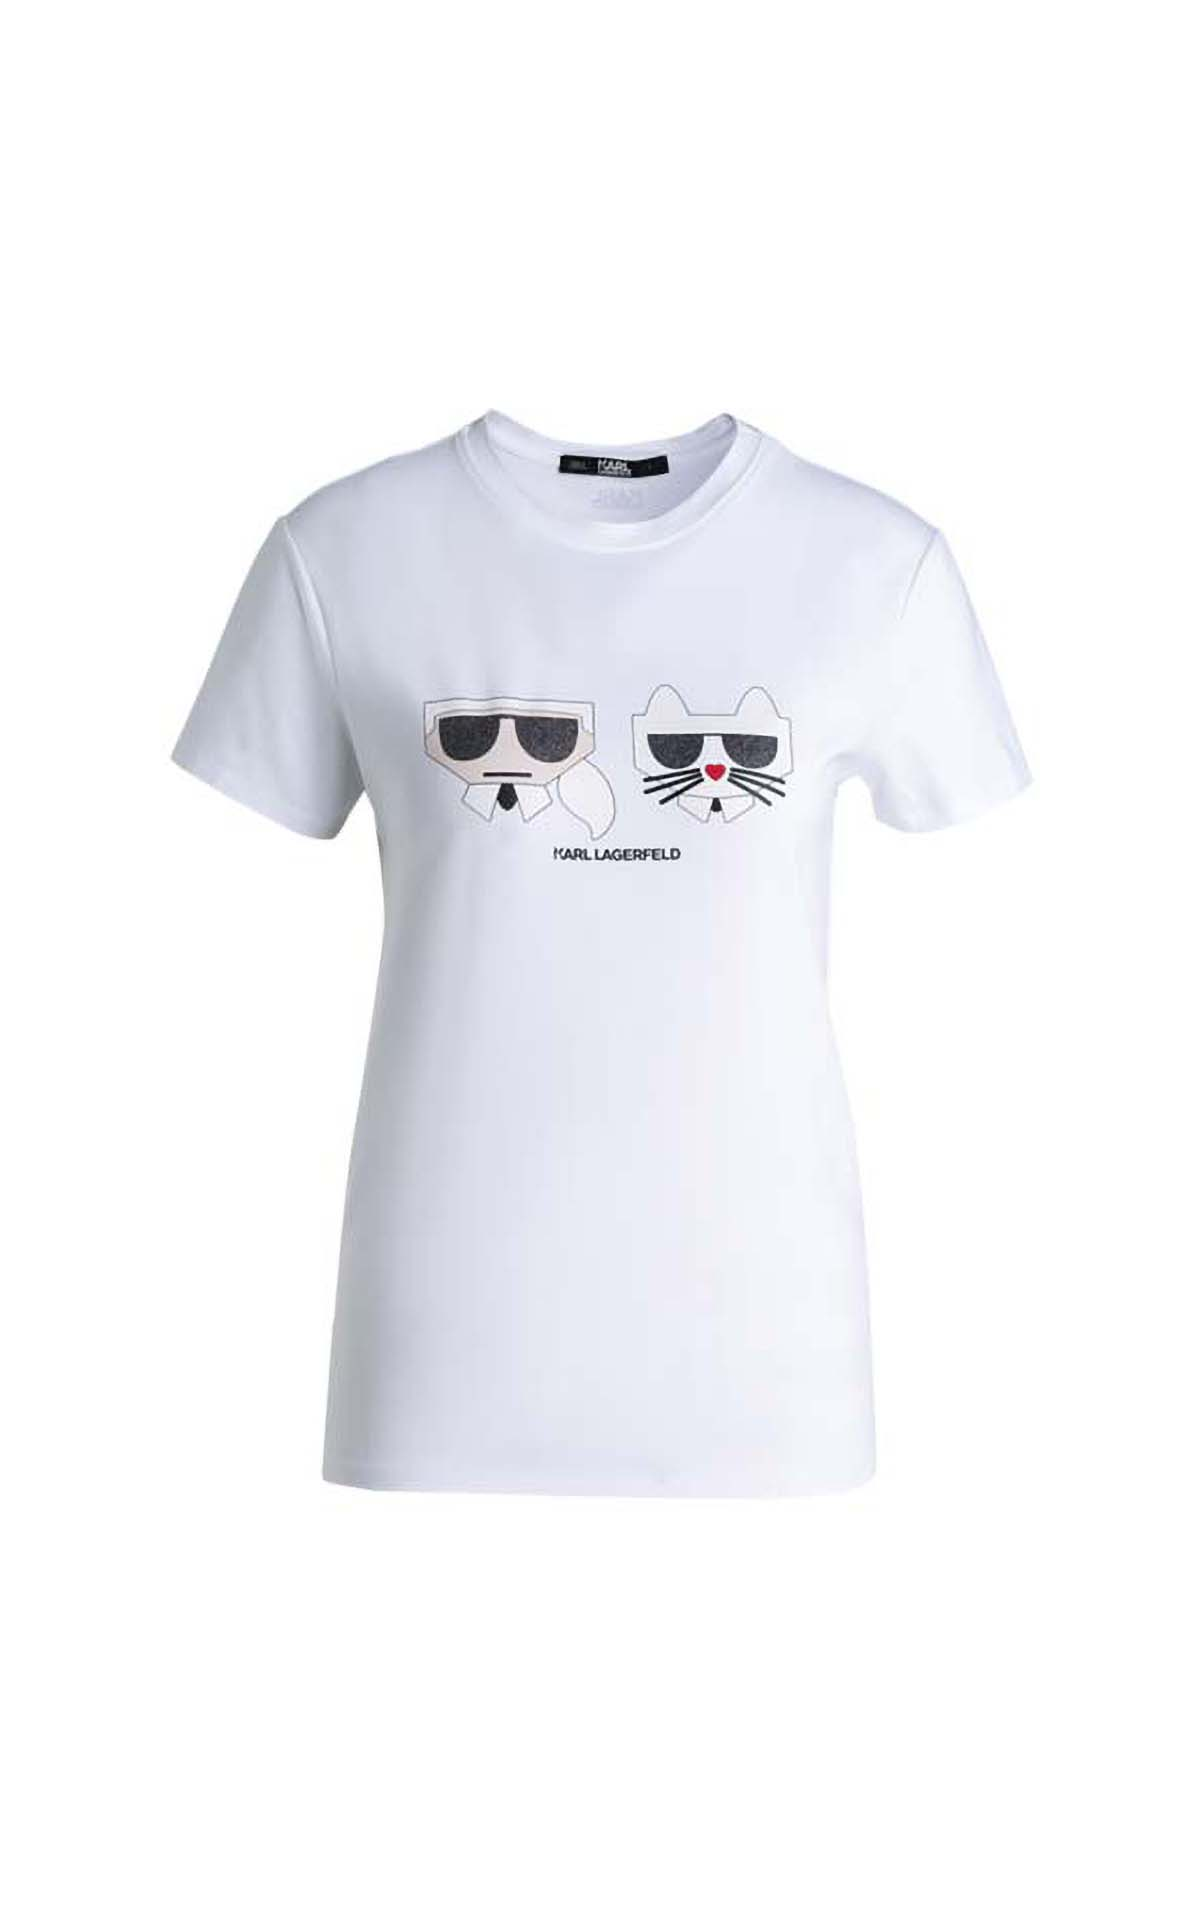 Karl Lagerfeld Kocktail couple tee at The Bicester Village Shopping Collection